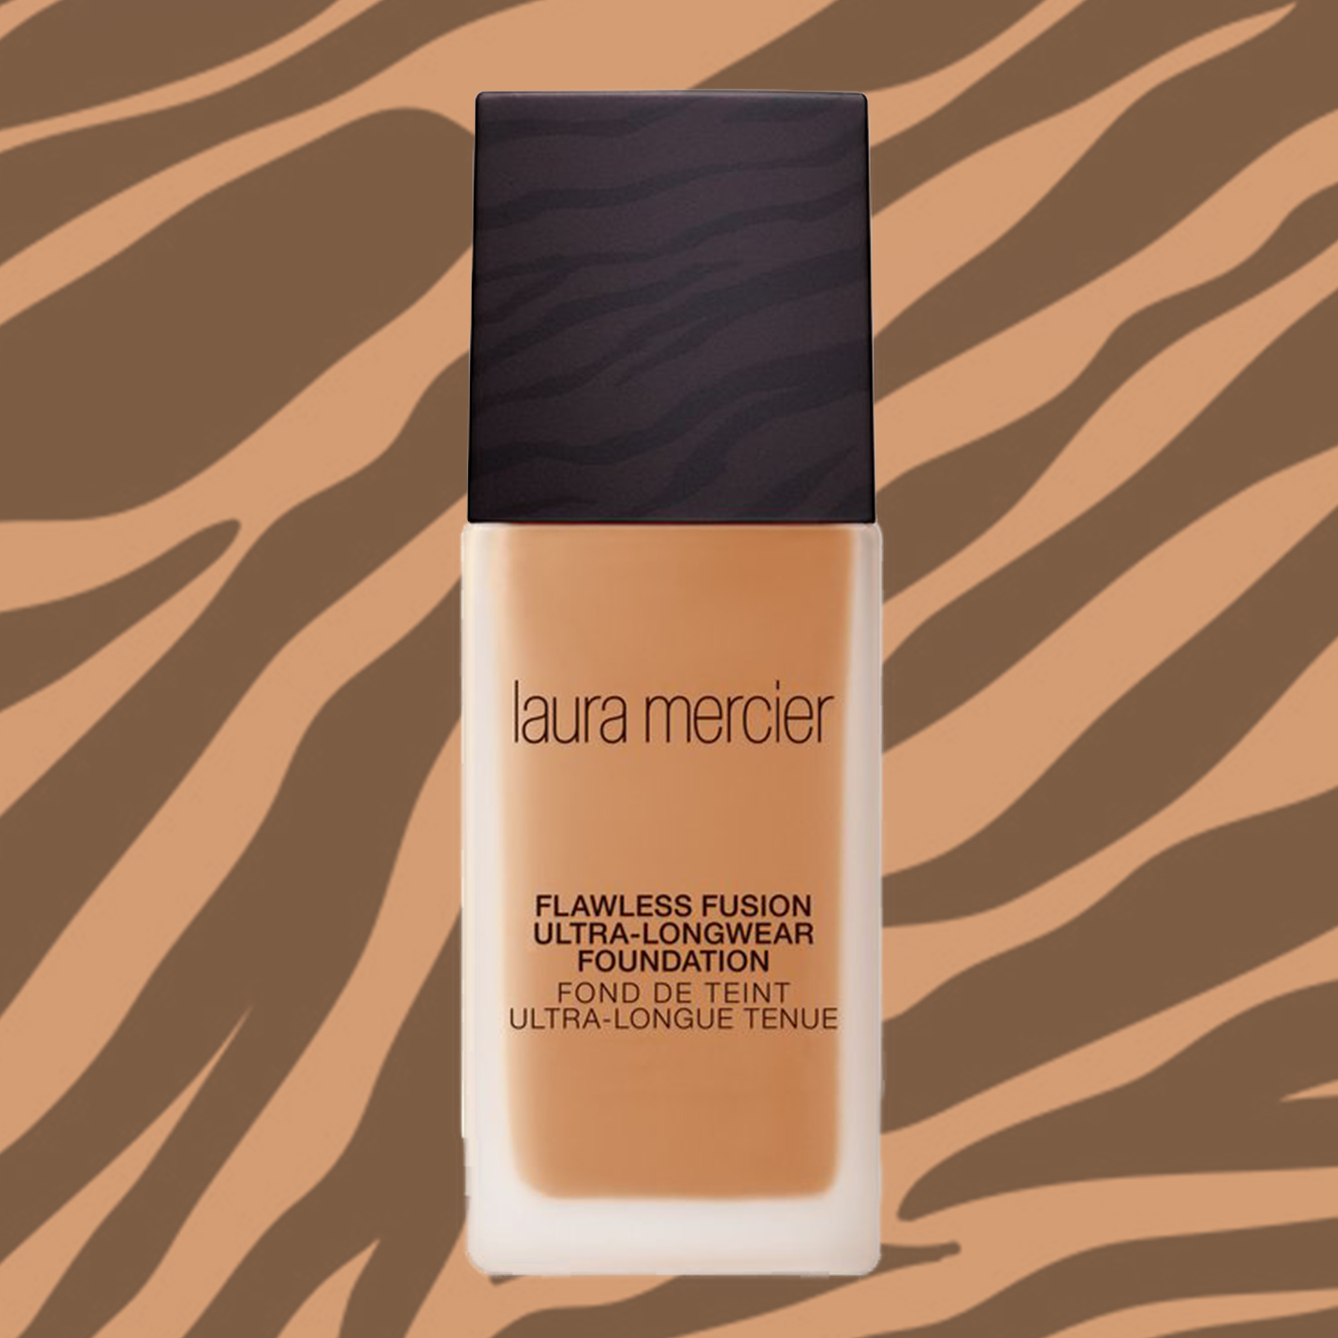 The Laura Mercier Flawless Fusion Foundation is Perfect for Summer